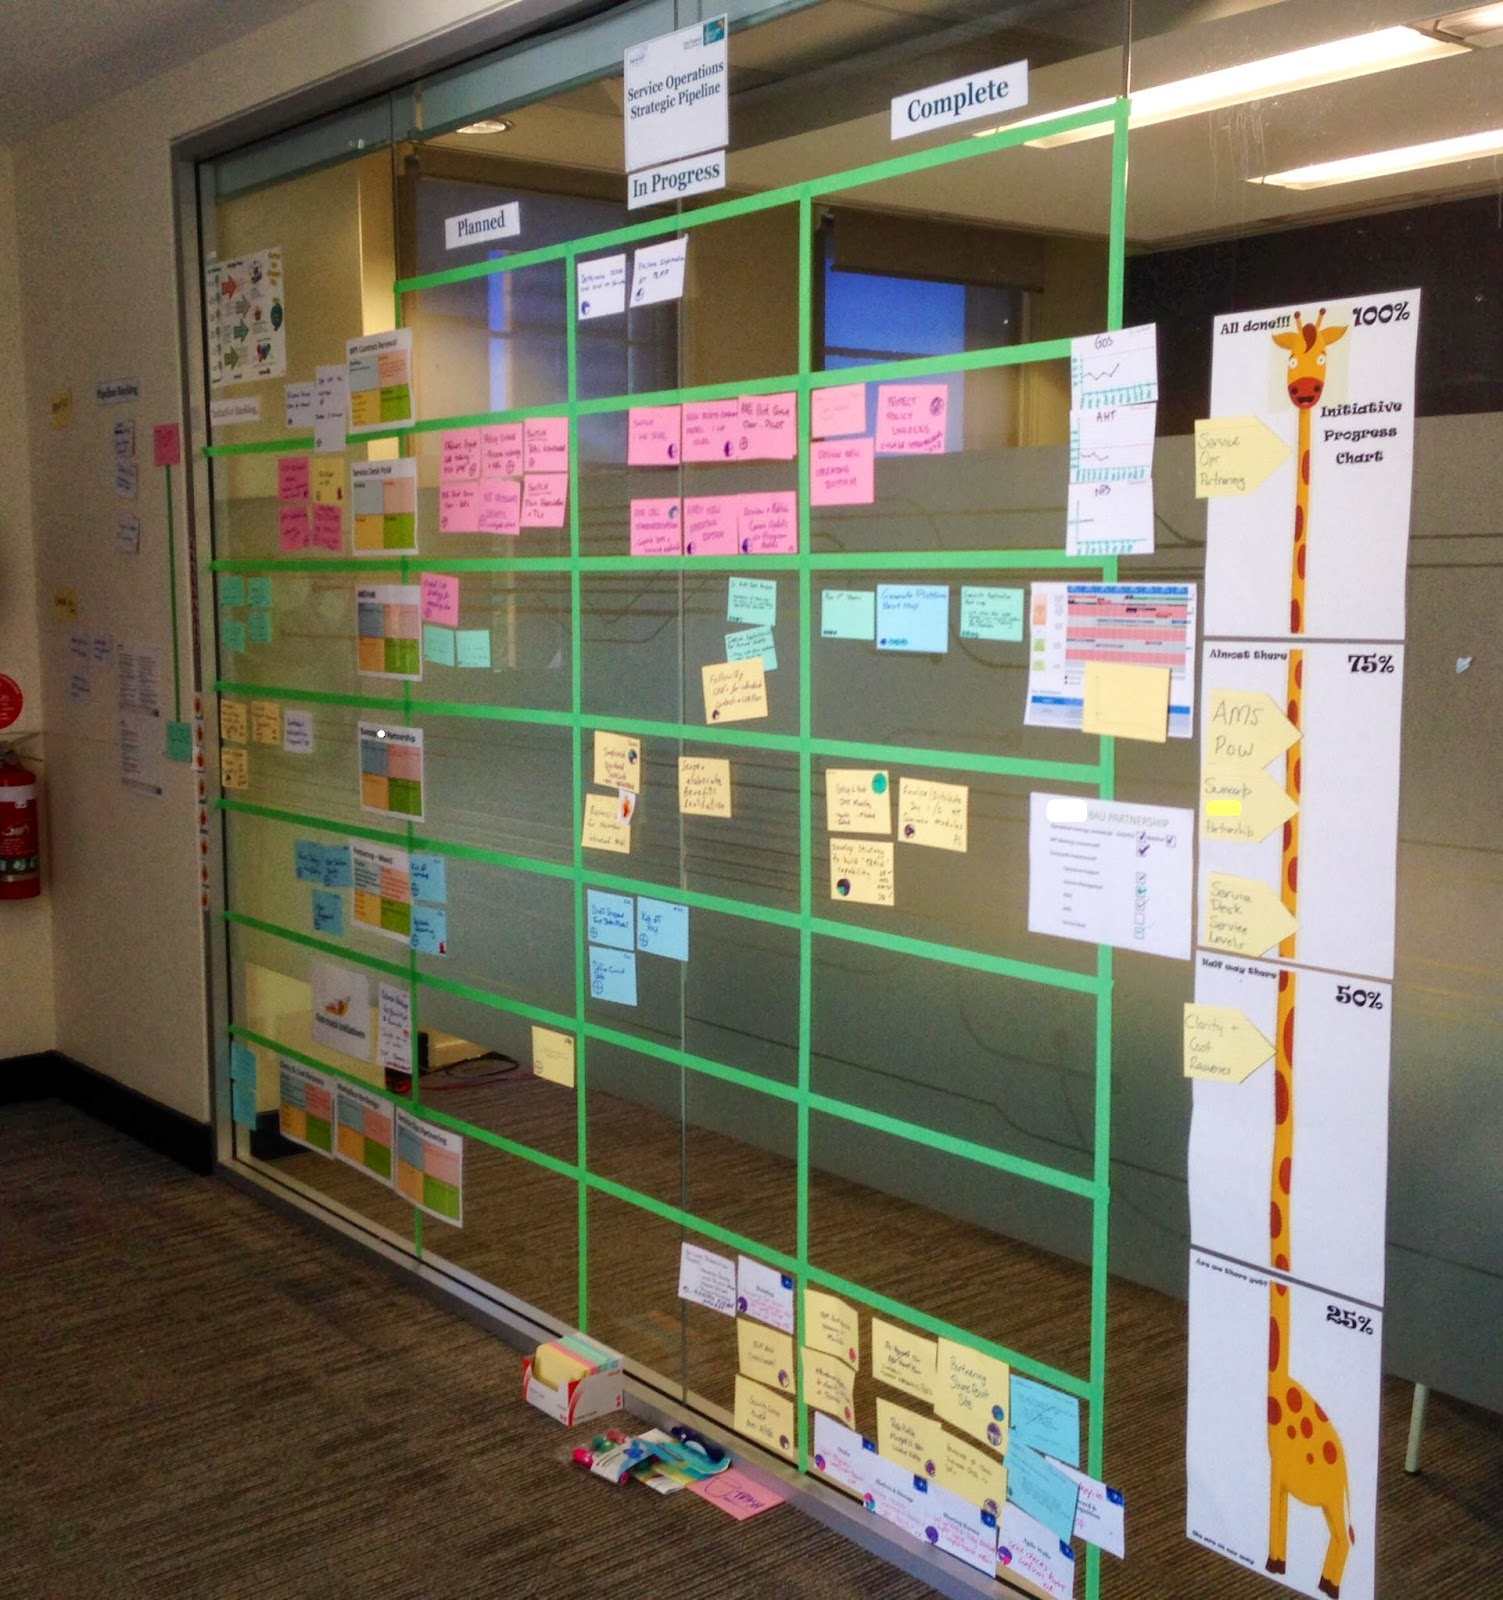 Agile program wall